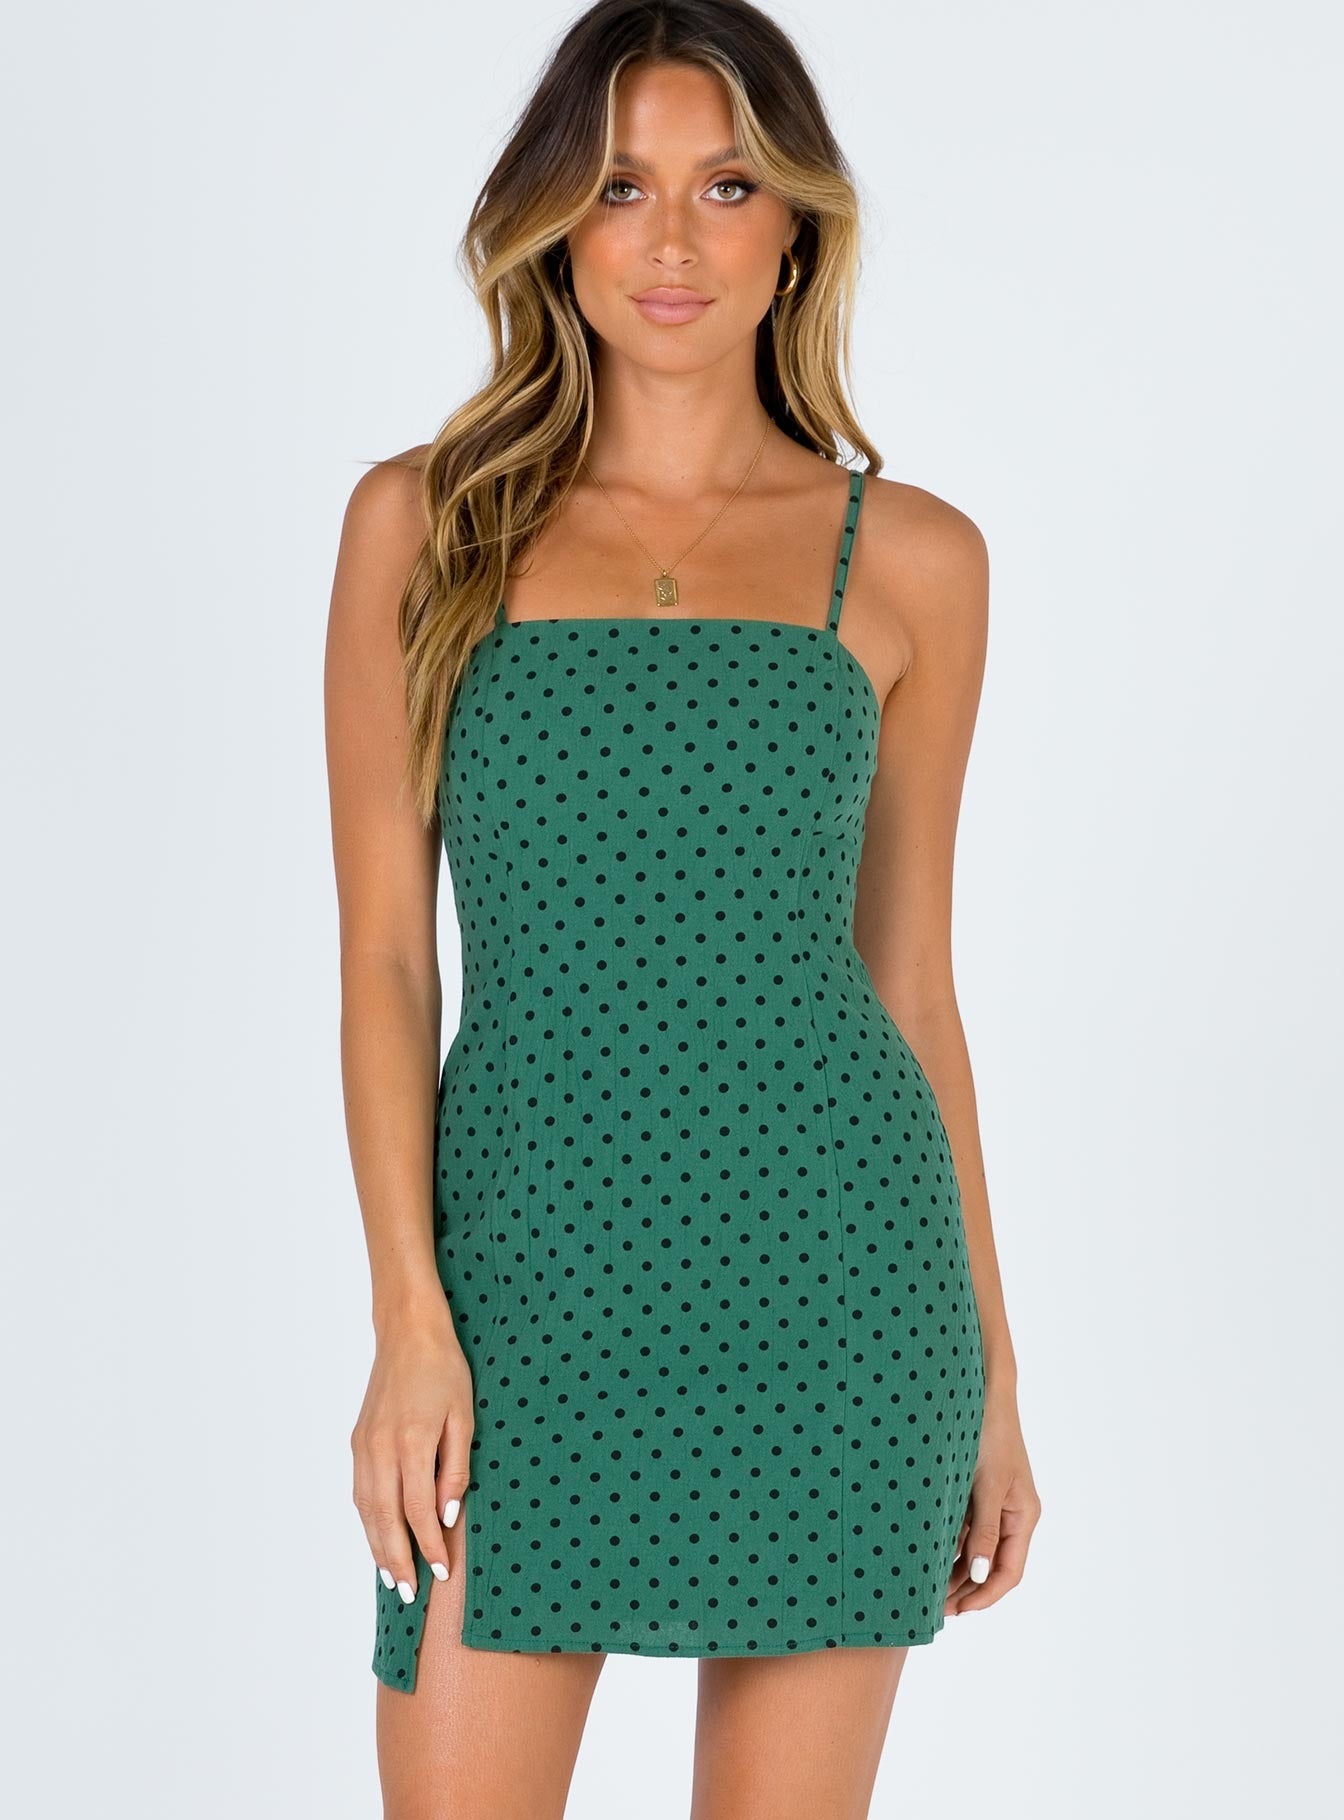 Minkpink Rockstar Polka Dot Dress